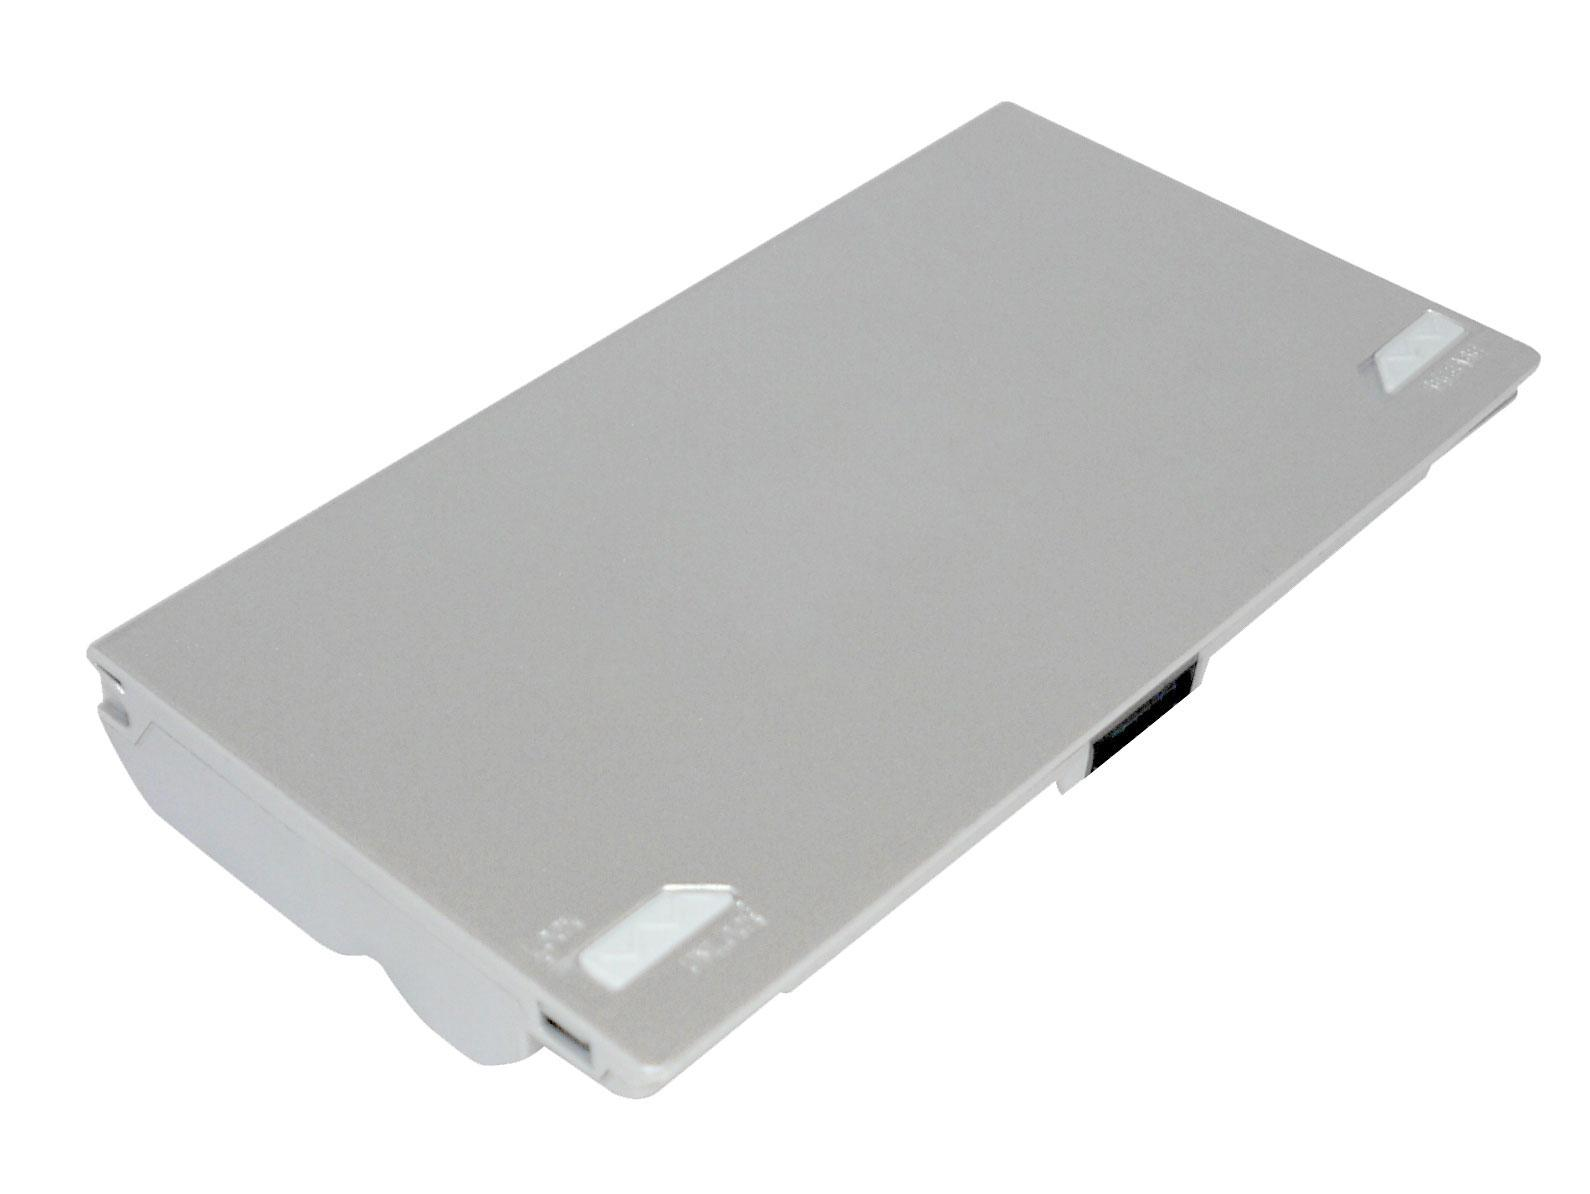 Replacement Sony VAIO VGN-FZ91S Battery